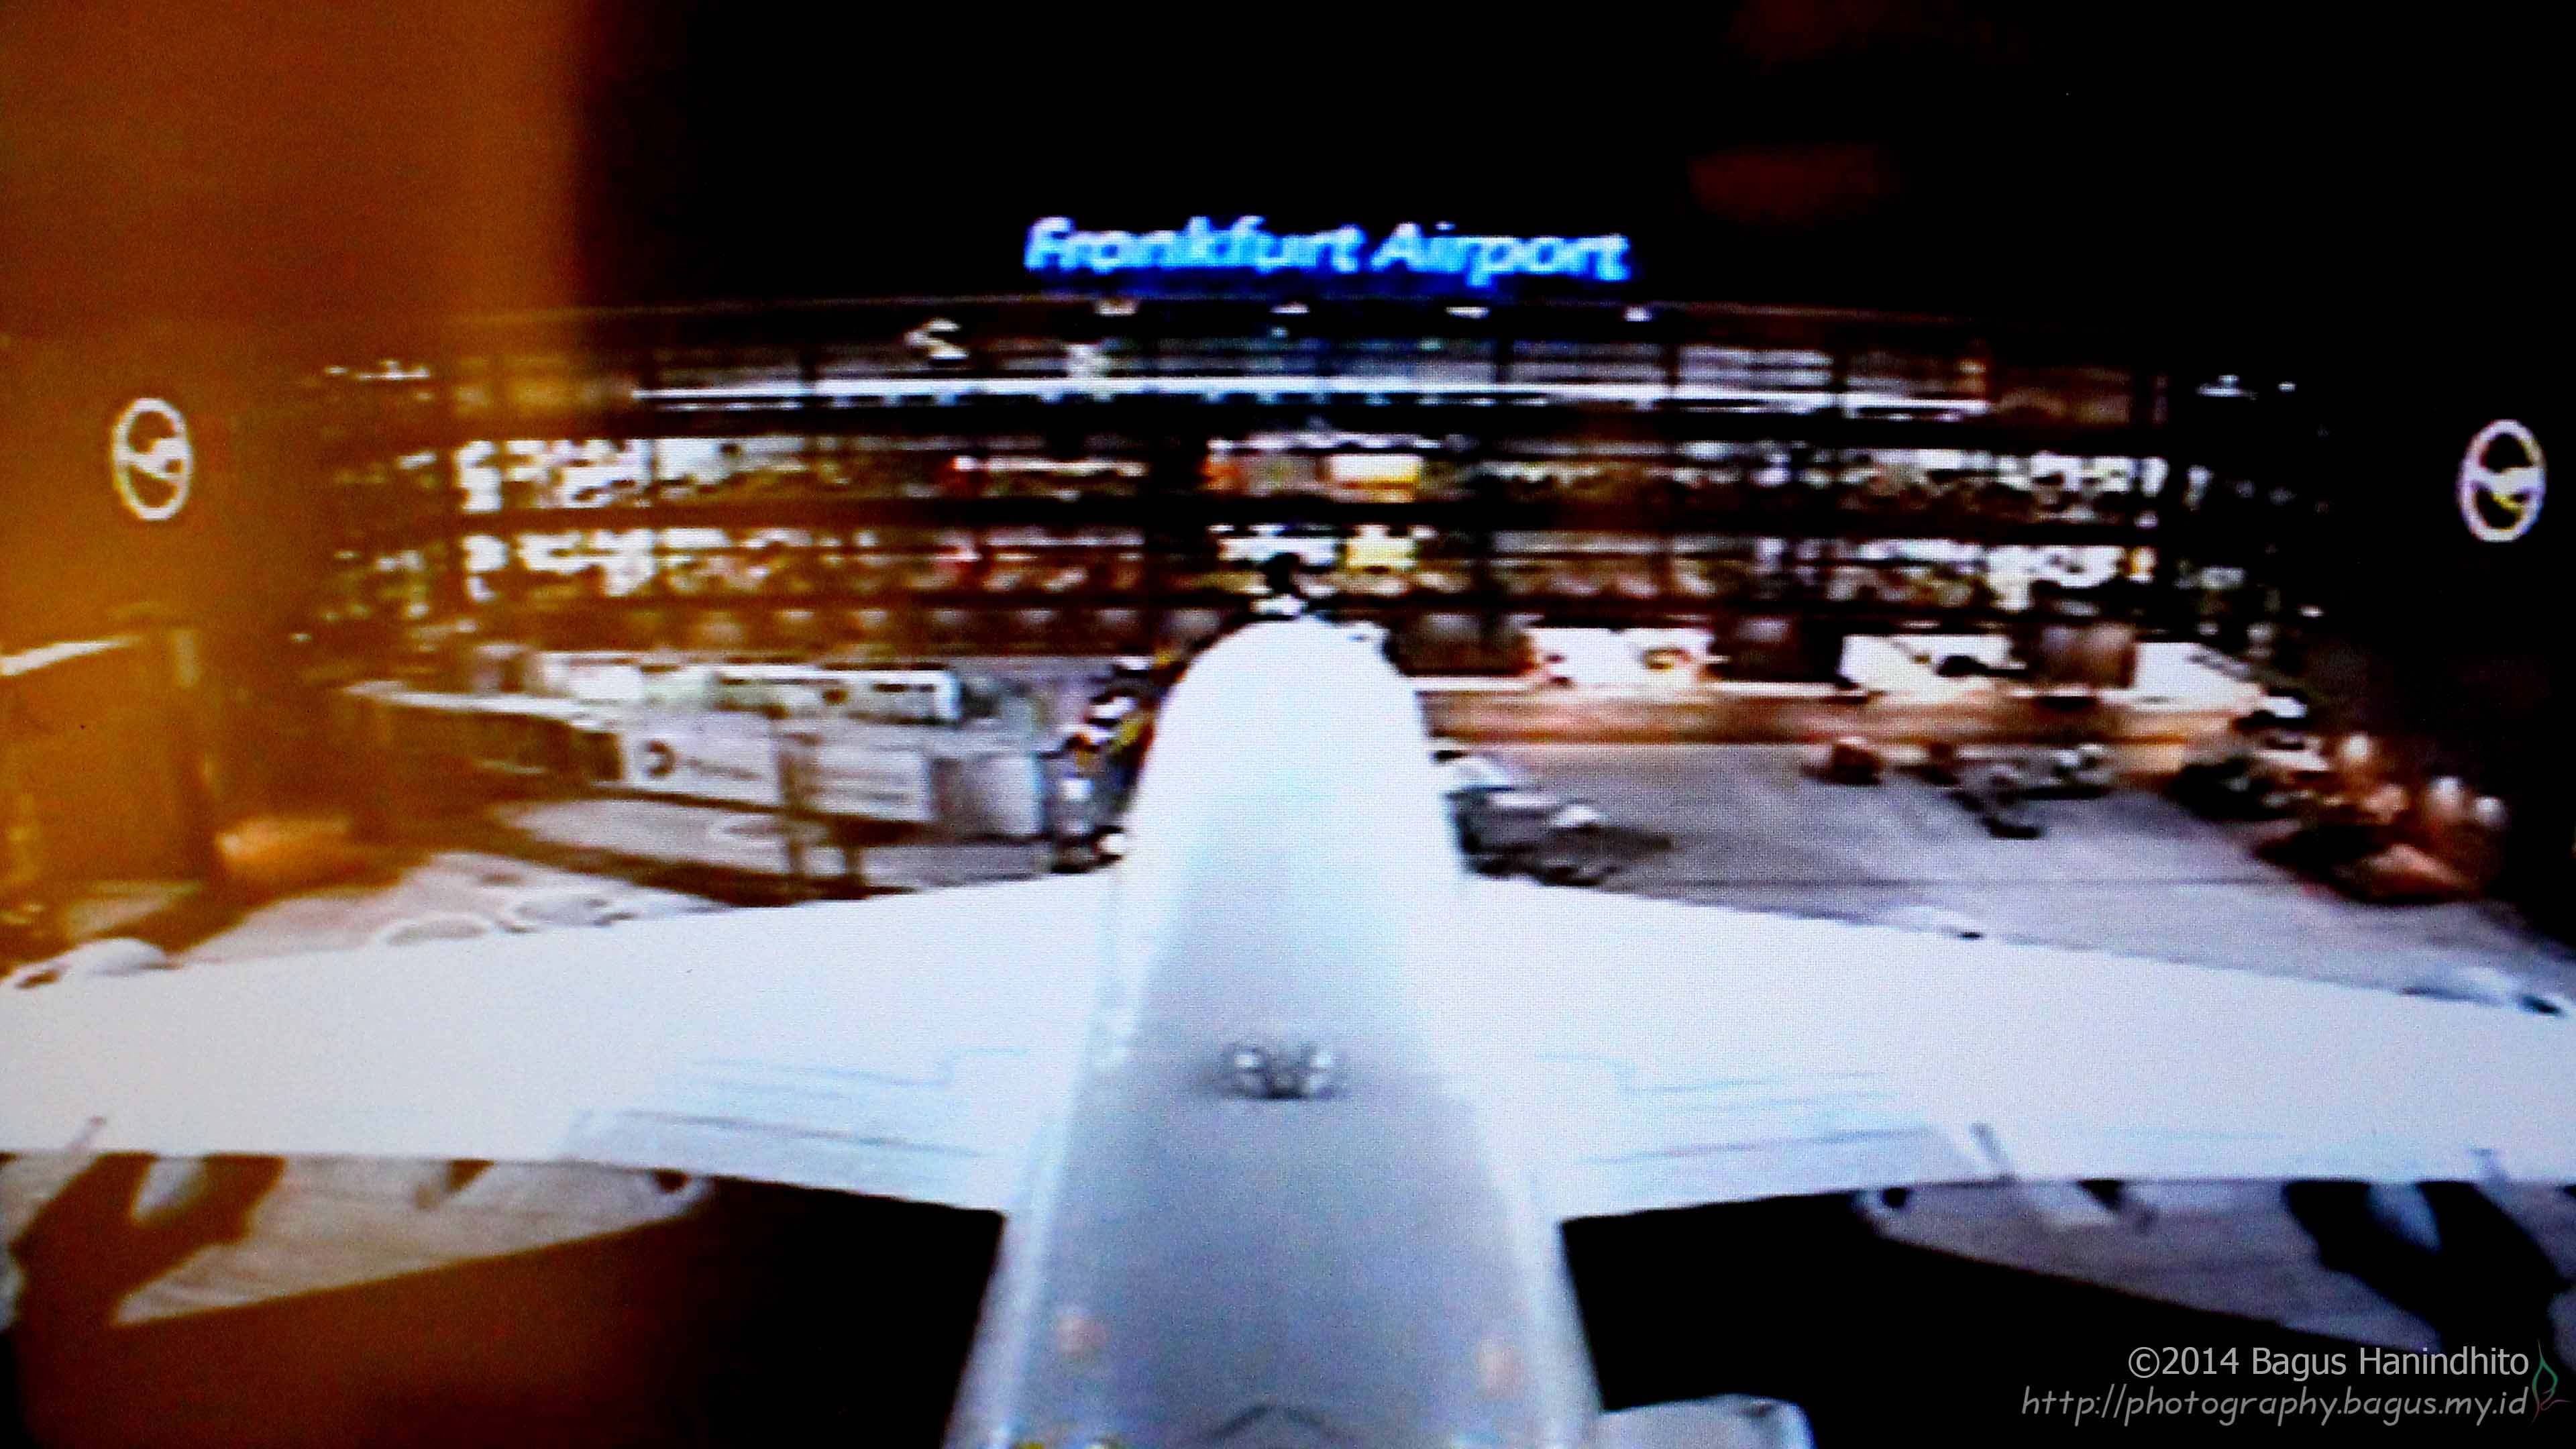 FRA airport terminal view from the tail camera of an A380-800.